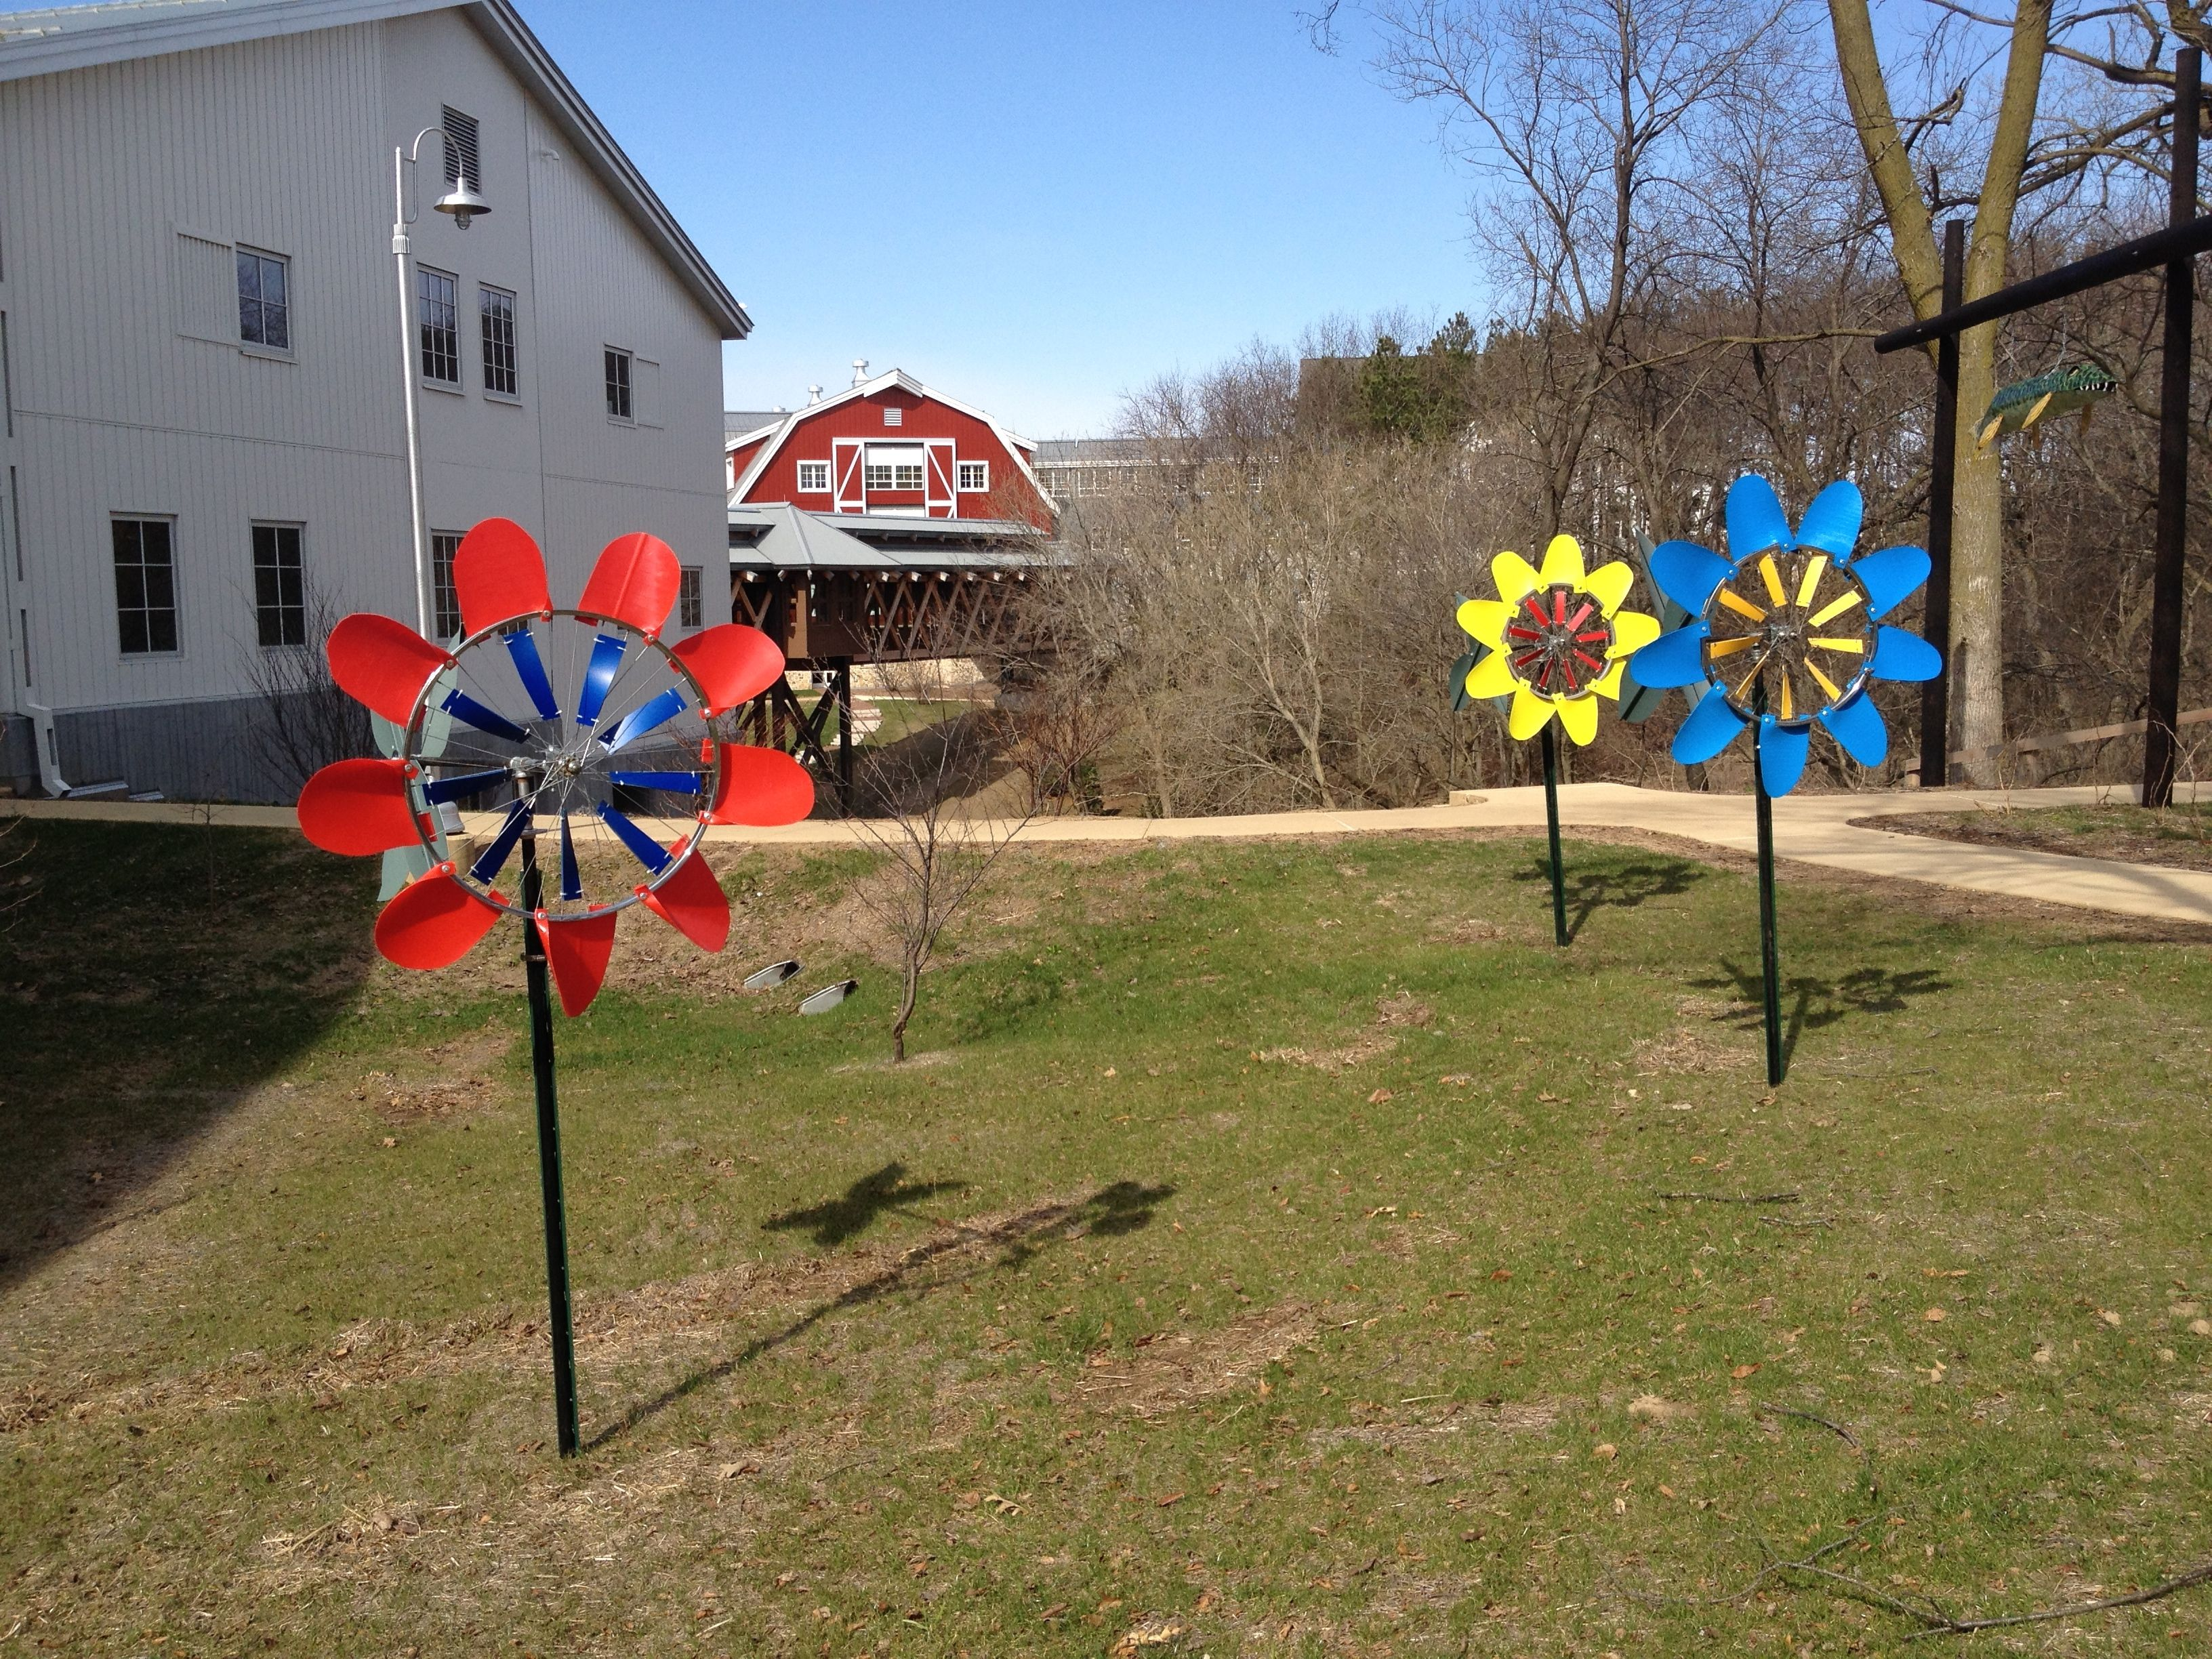 Windflower Kinetic Garden Sculptures From Windworker Studio At Epic Systems  In Verona, WI. See